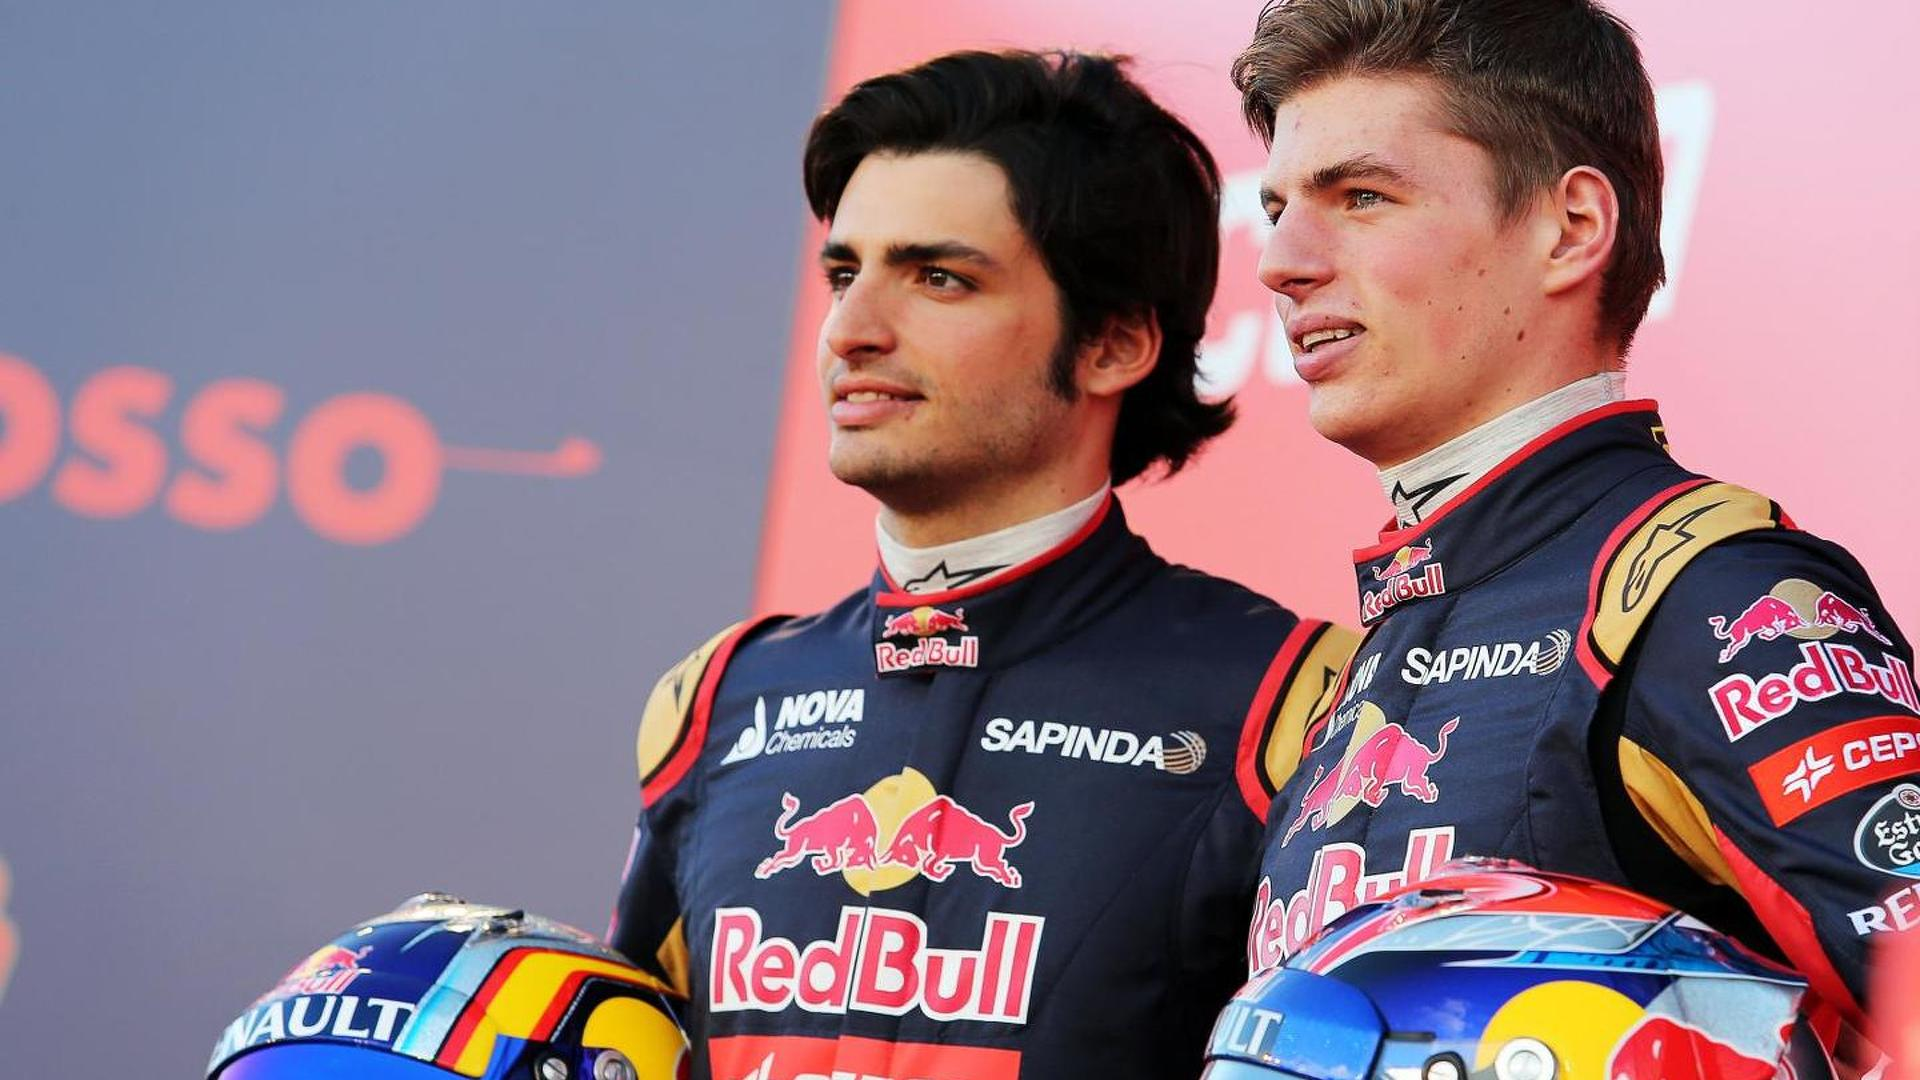 Verstappen getting on with 'rival' Sainz